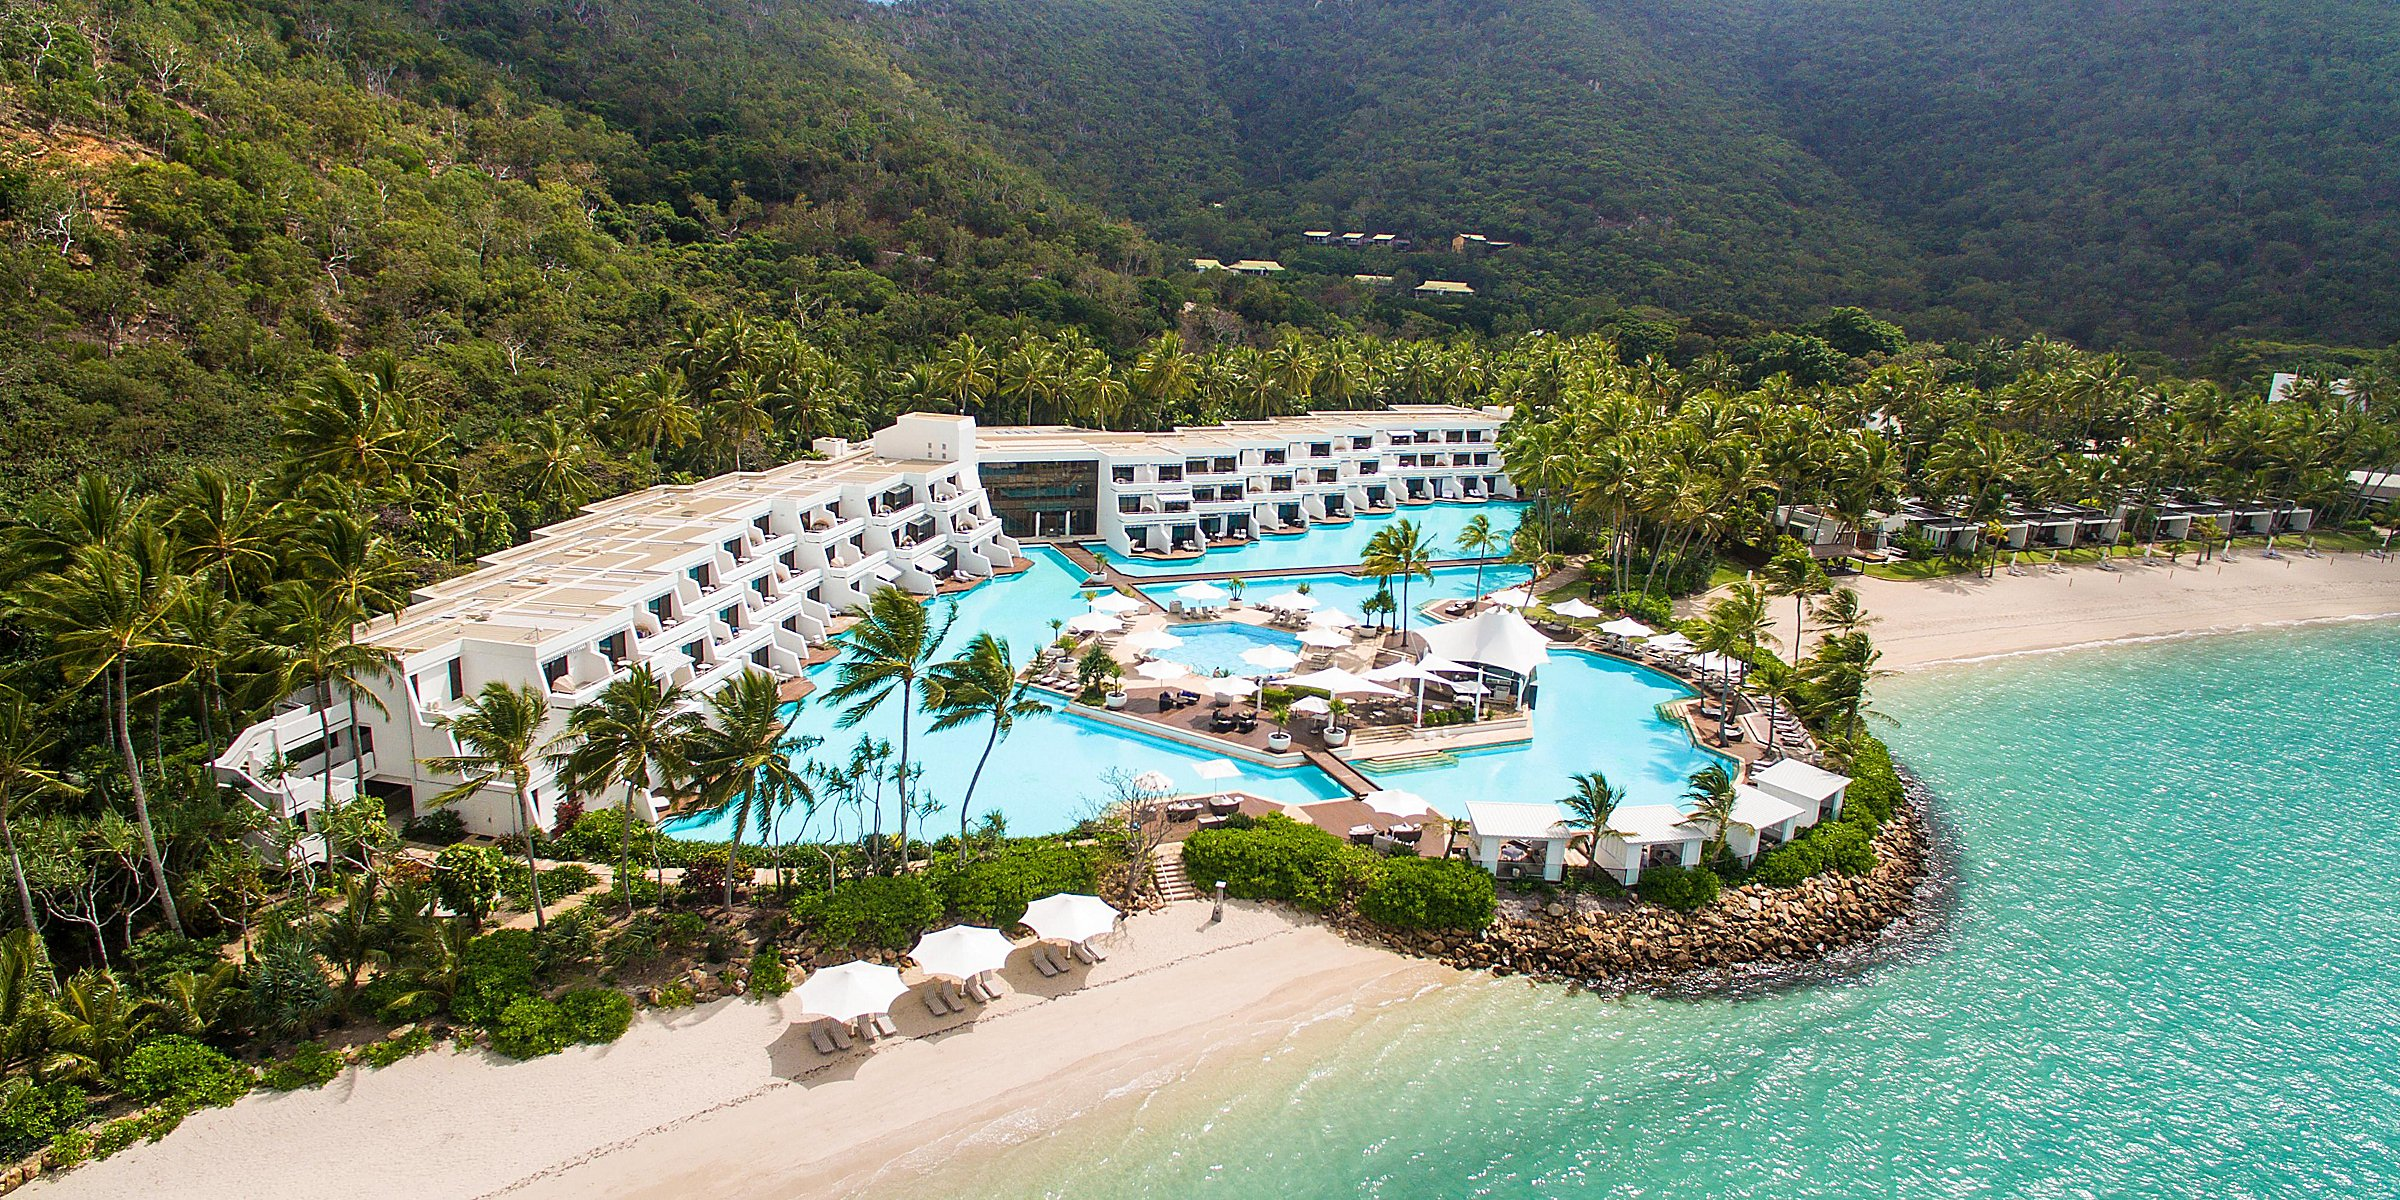 InterContinental Hayman Island Resort - Hayman Island